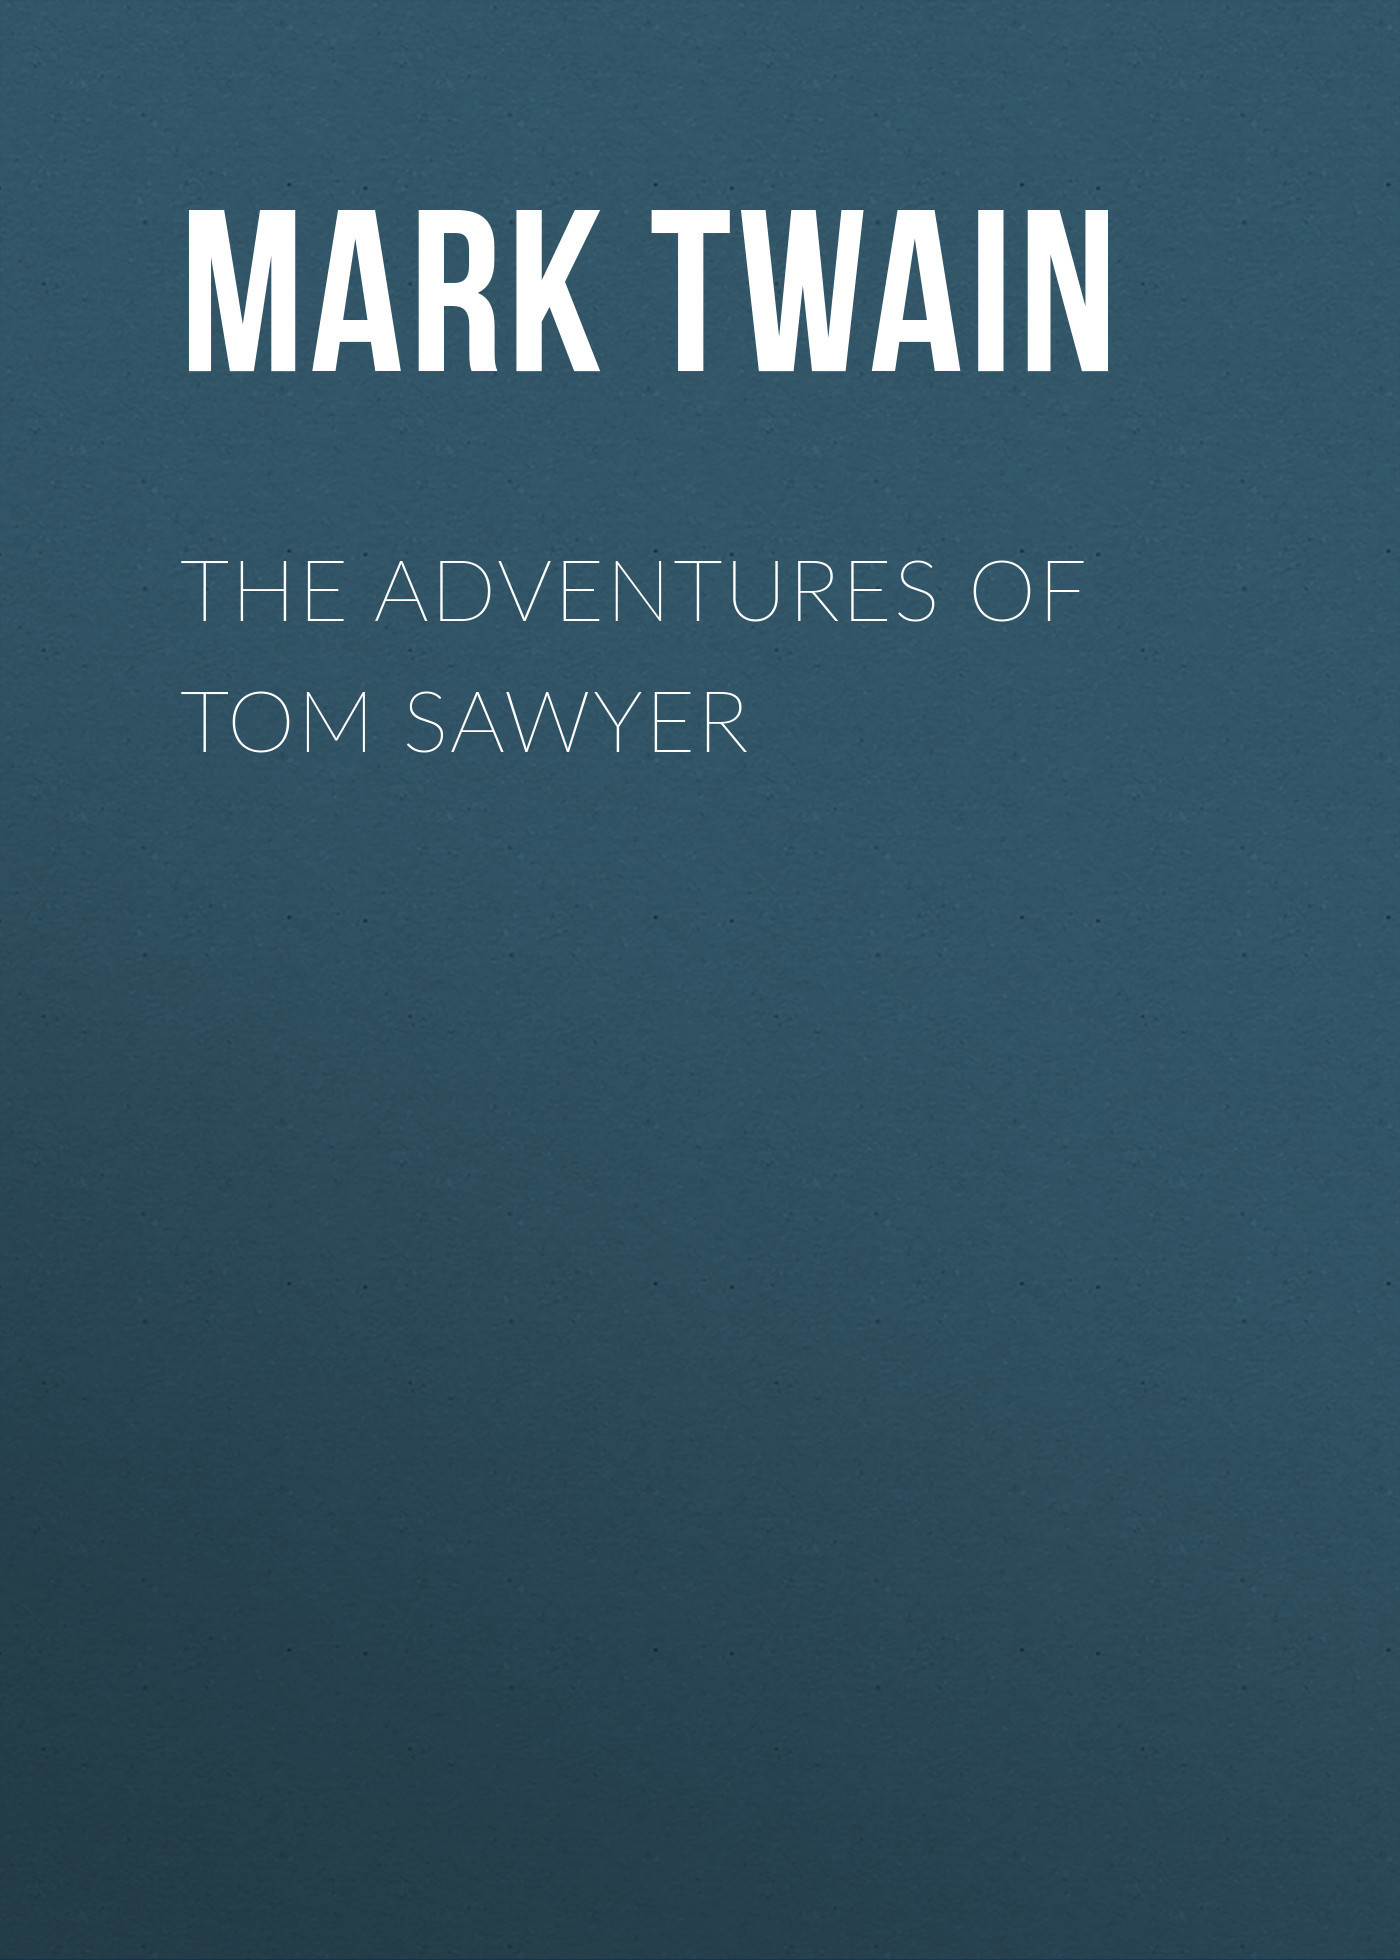 Марк Твен The Adventures of Tom Sawyer марк твен the prince and the pauper